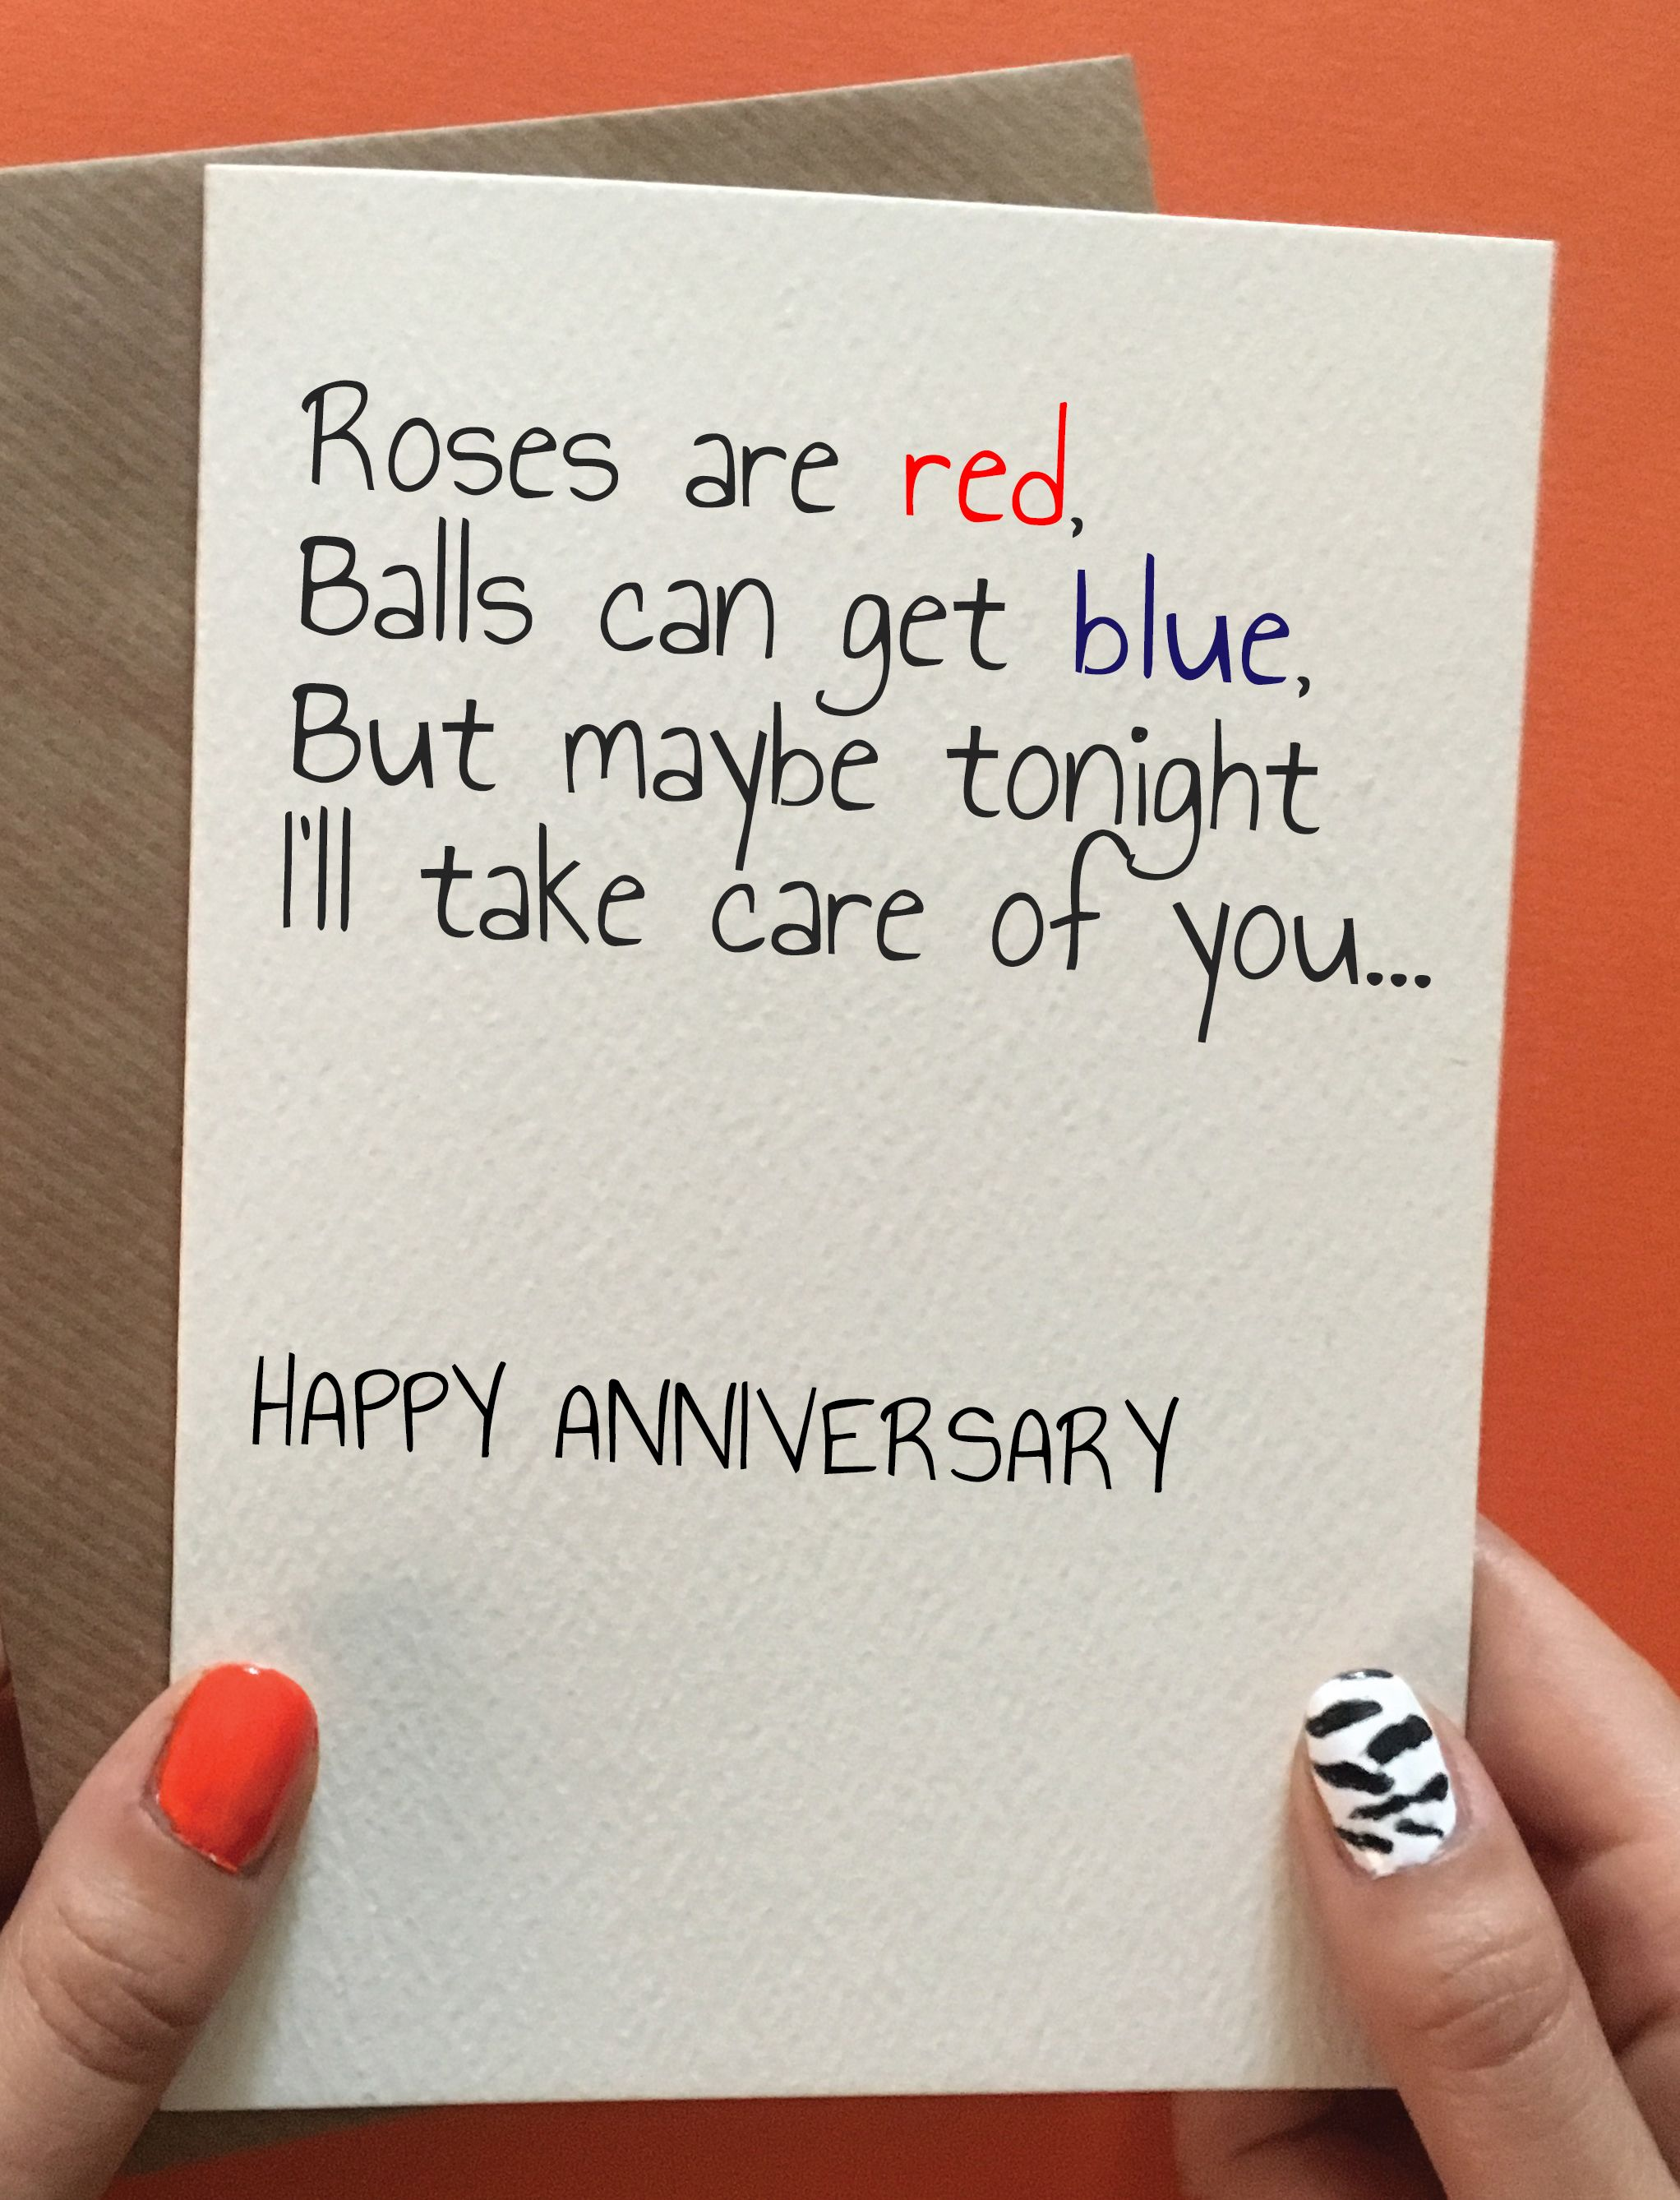 Blue Balls | Love notes for boyfriend, Love notes for